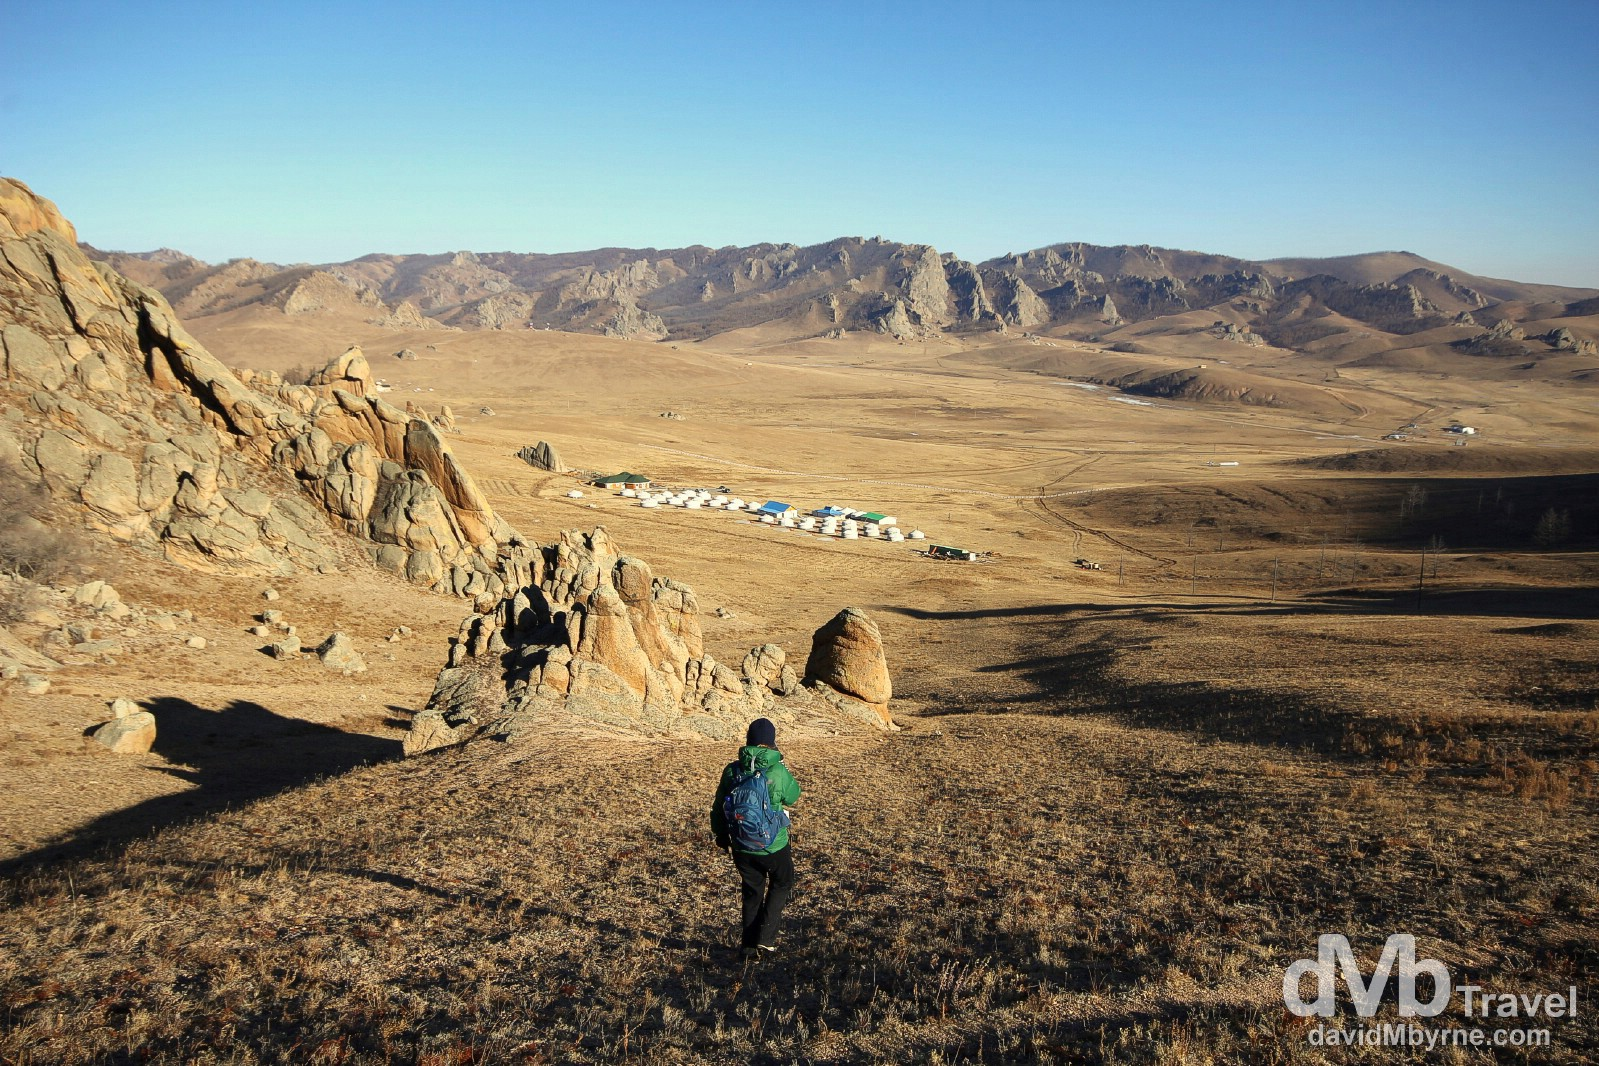 Walking in Terelj National Park, Mongolia. November 3rd 2012.